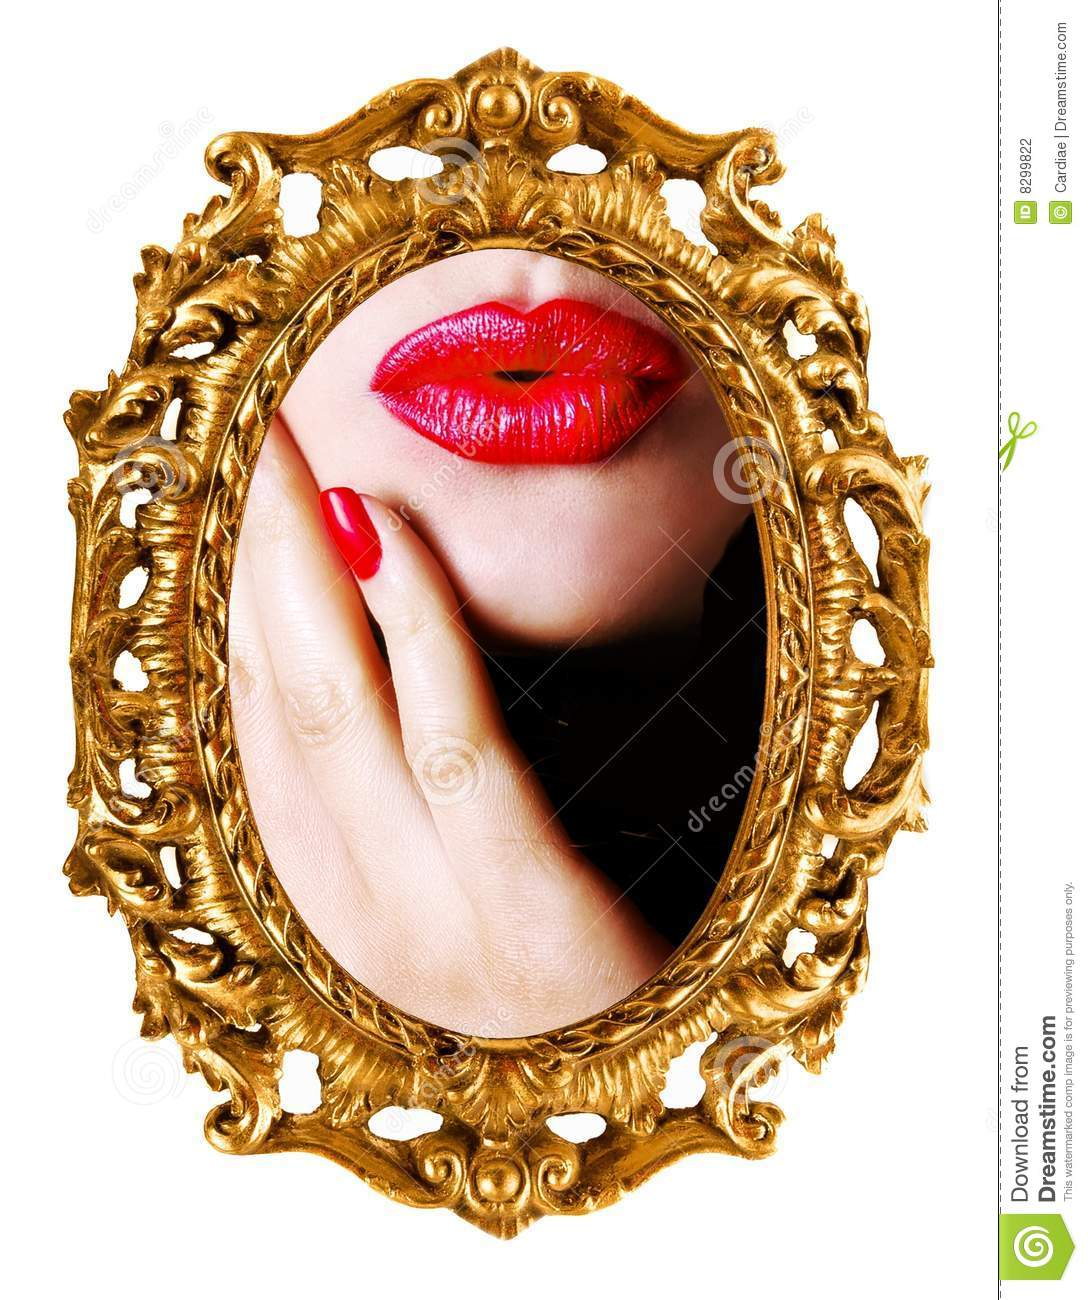 Kiss woman 39 s reflection in mirror stock photography for Mirror kisses